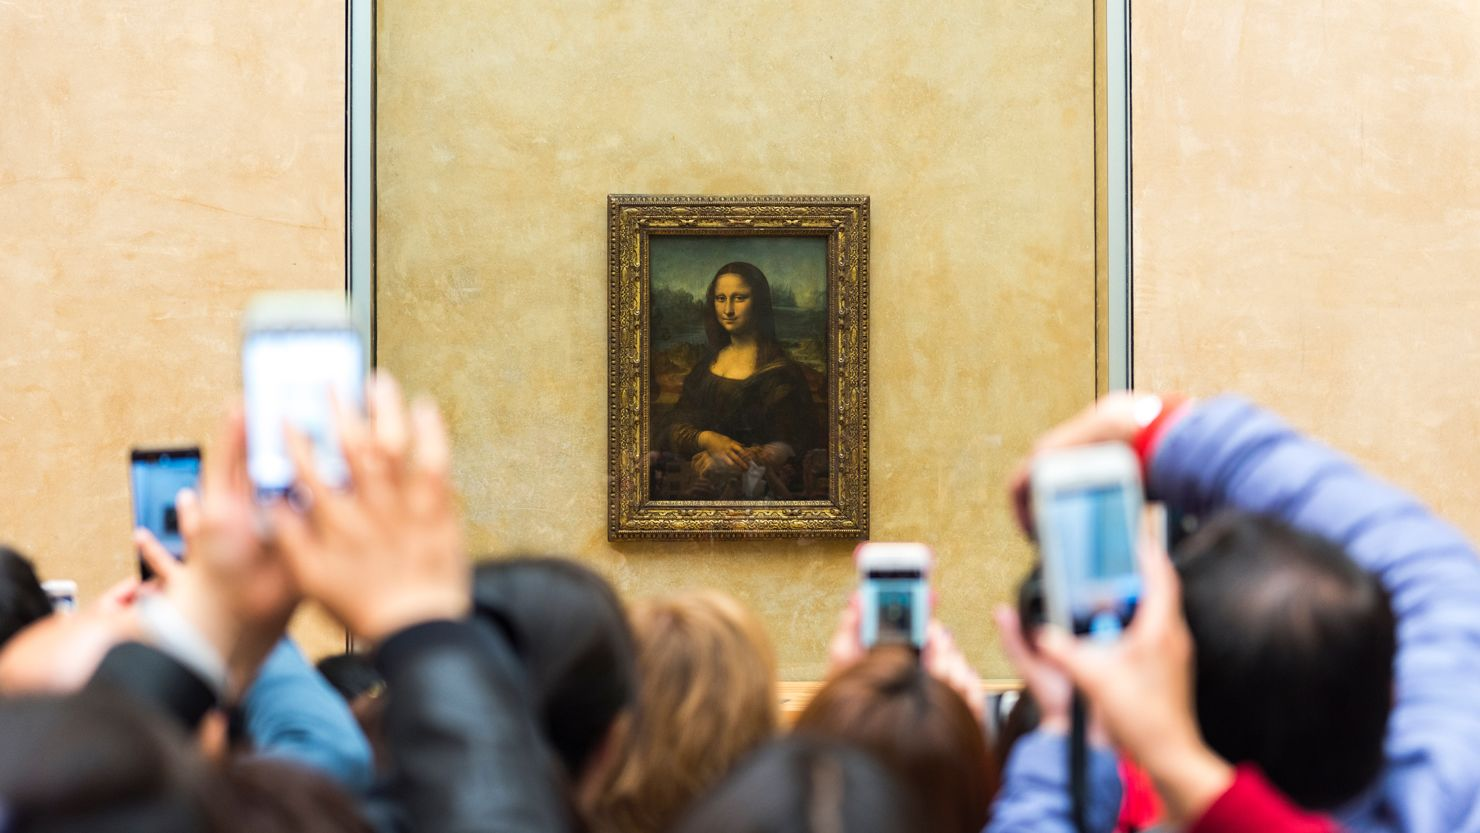 The Mona Lisa being photographed by visitors at the Louvre in 2017